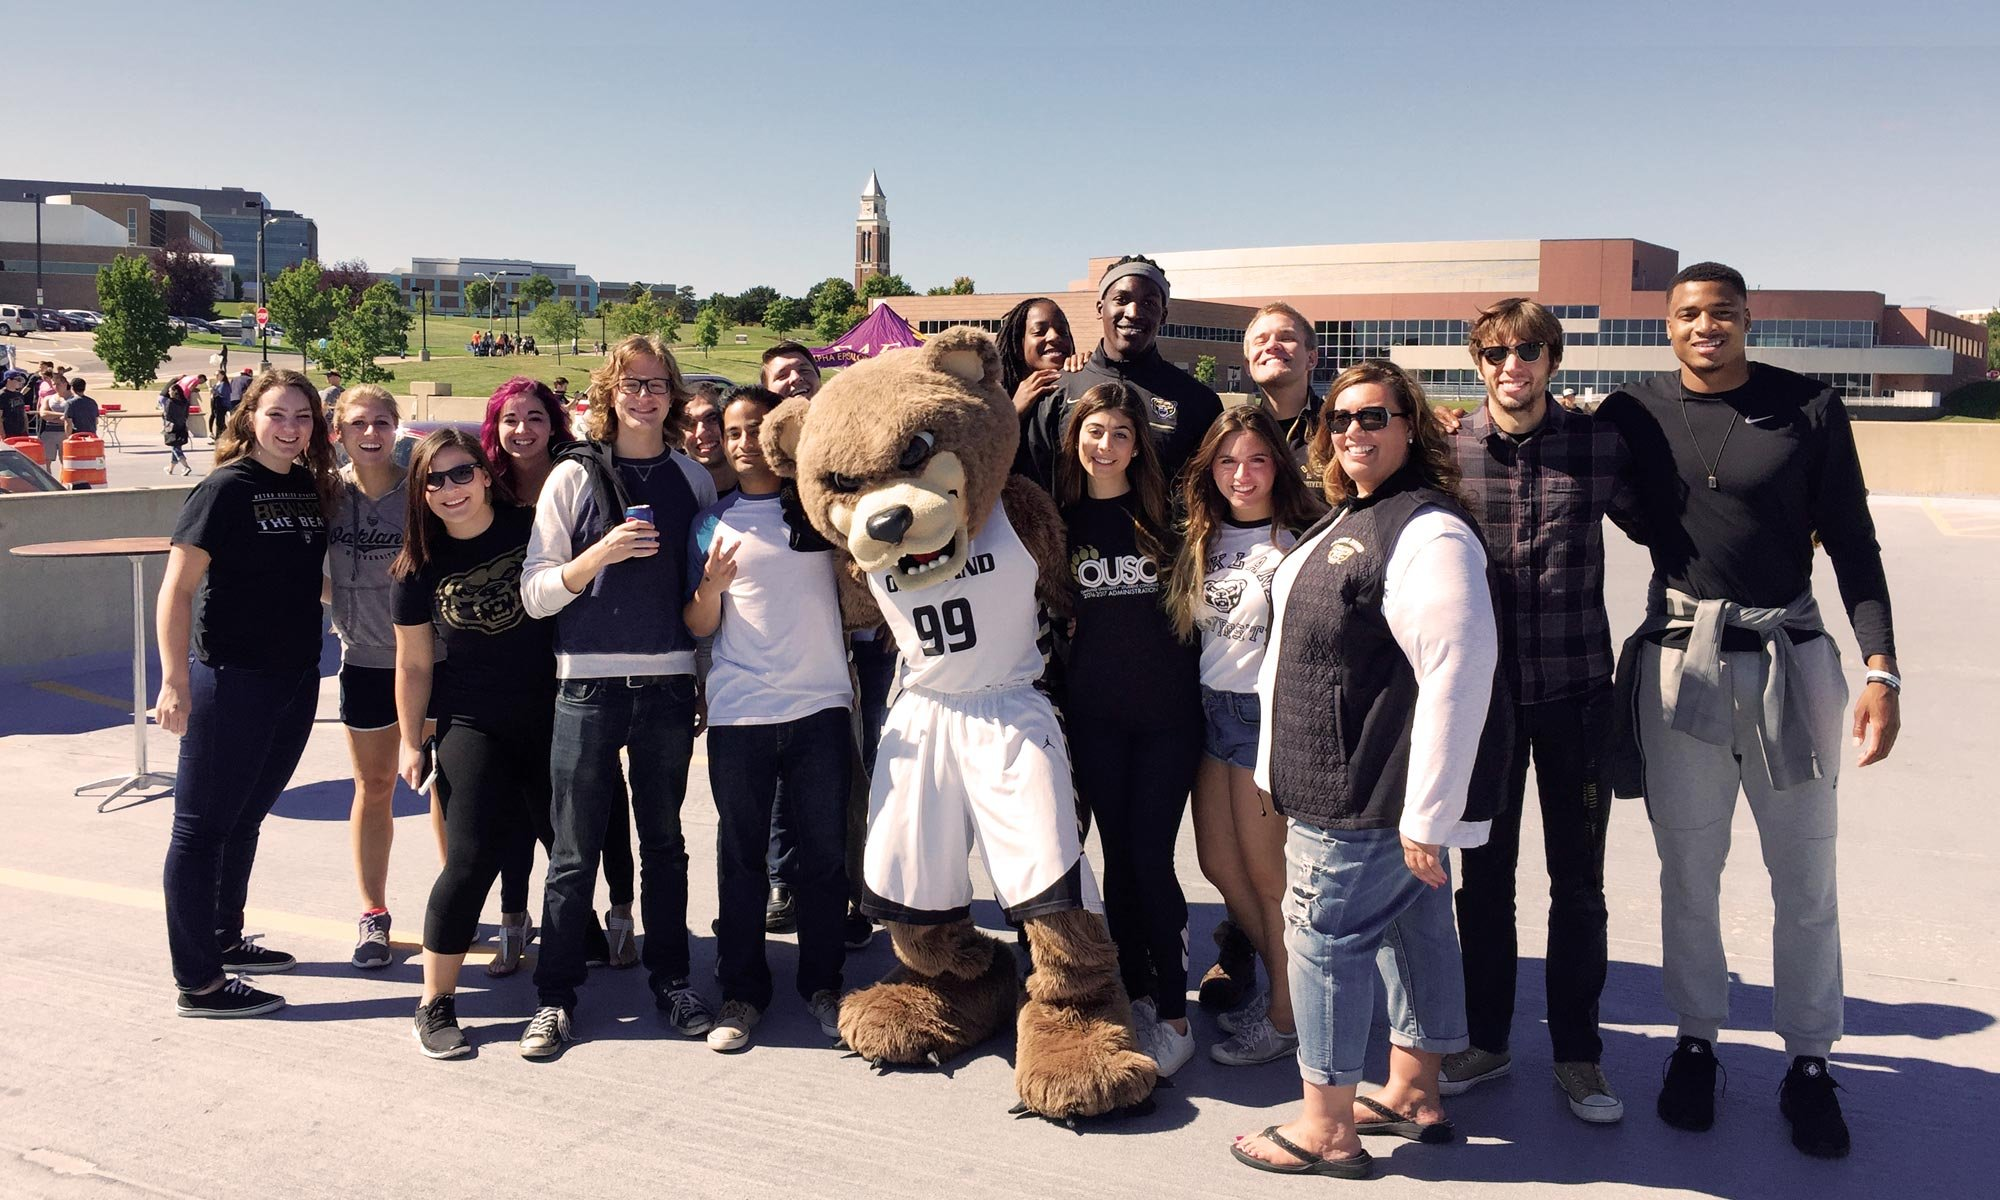 The Grizz posing for a photo with a group of students on a parking garage roof with a view of Elliott Tower in the background